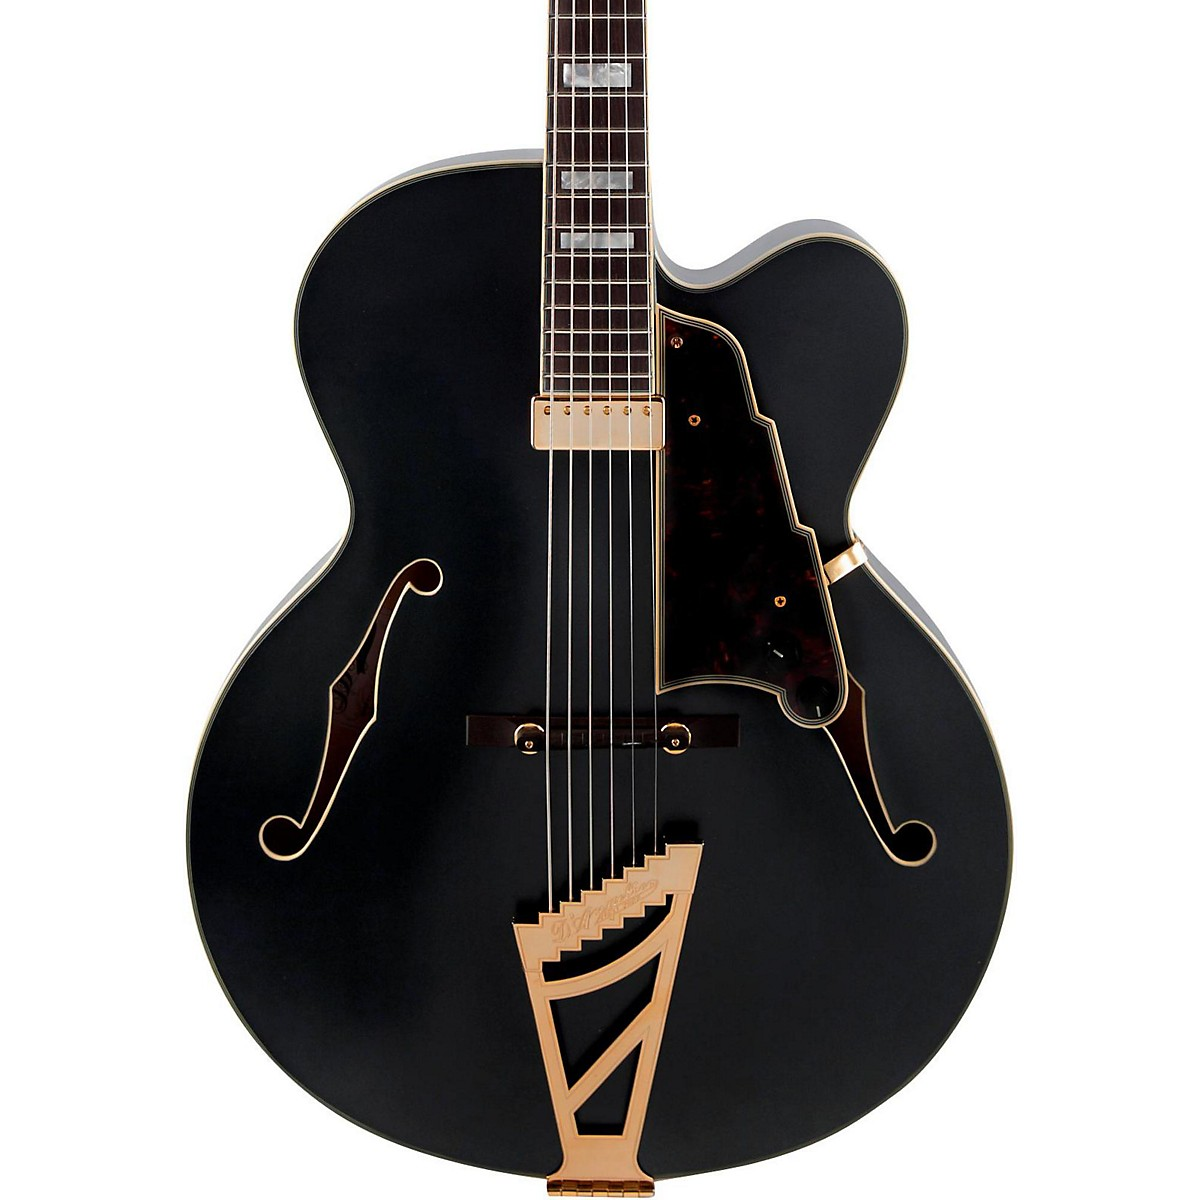 D'Angelico Deluxe Series EXL-1 Hollowbody Electric Guitar with Seymour Duncan Floating Pickup and Stairstep Tailpiece